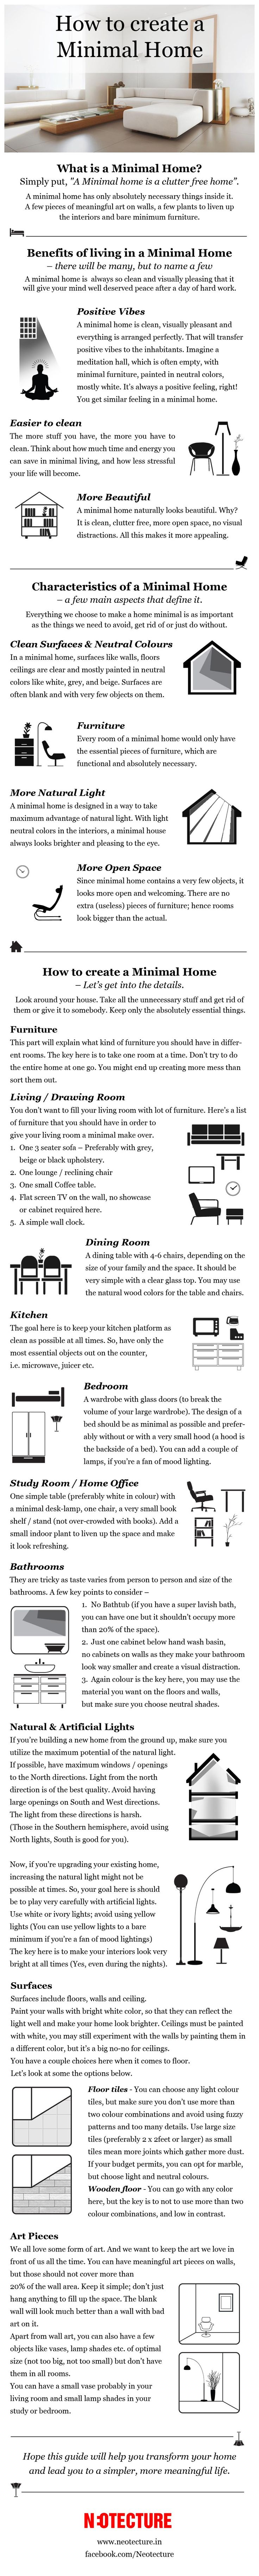 How to Create a Minimal Home - Infographic (1)